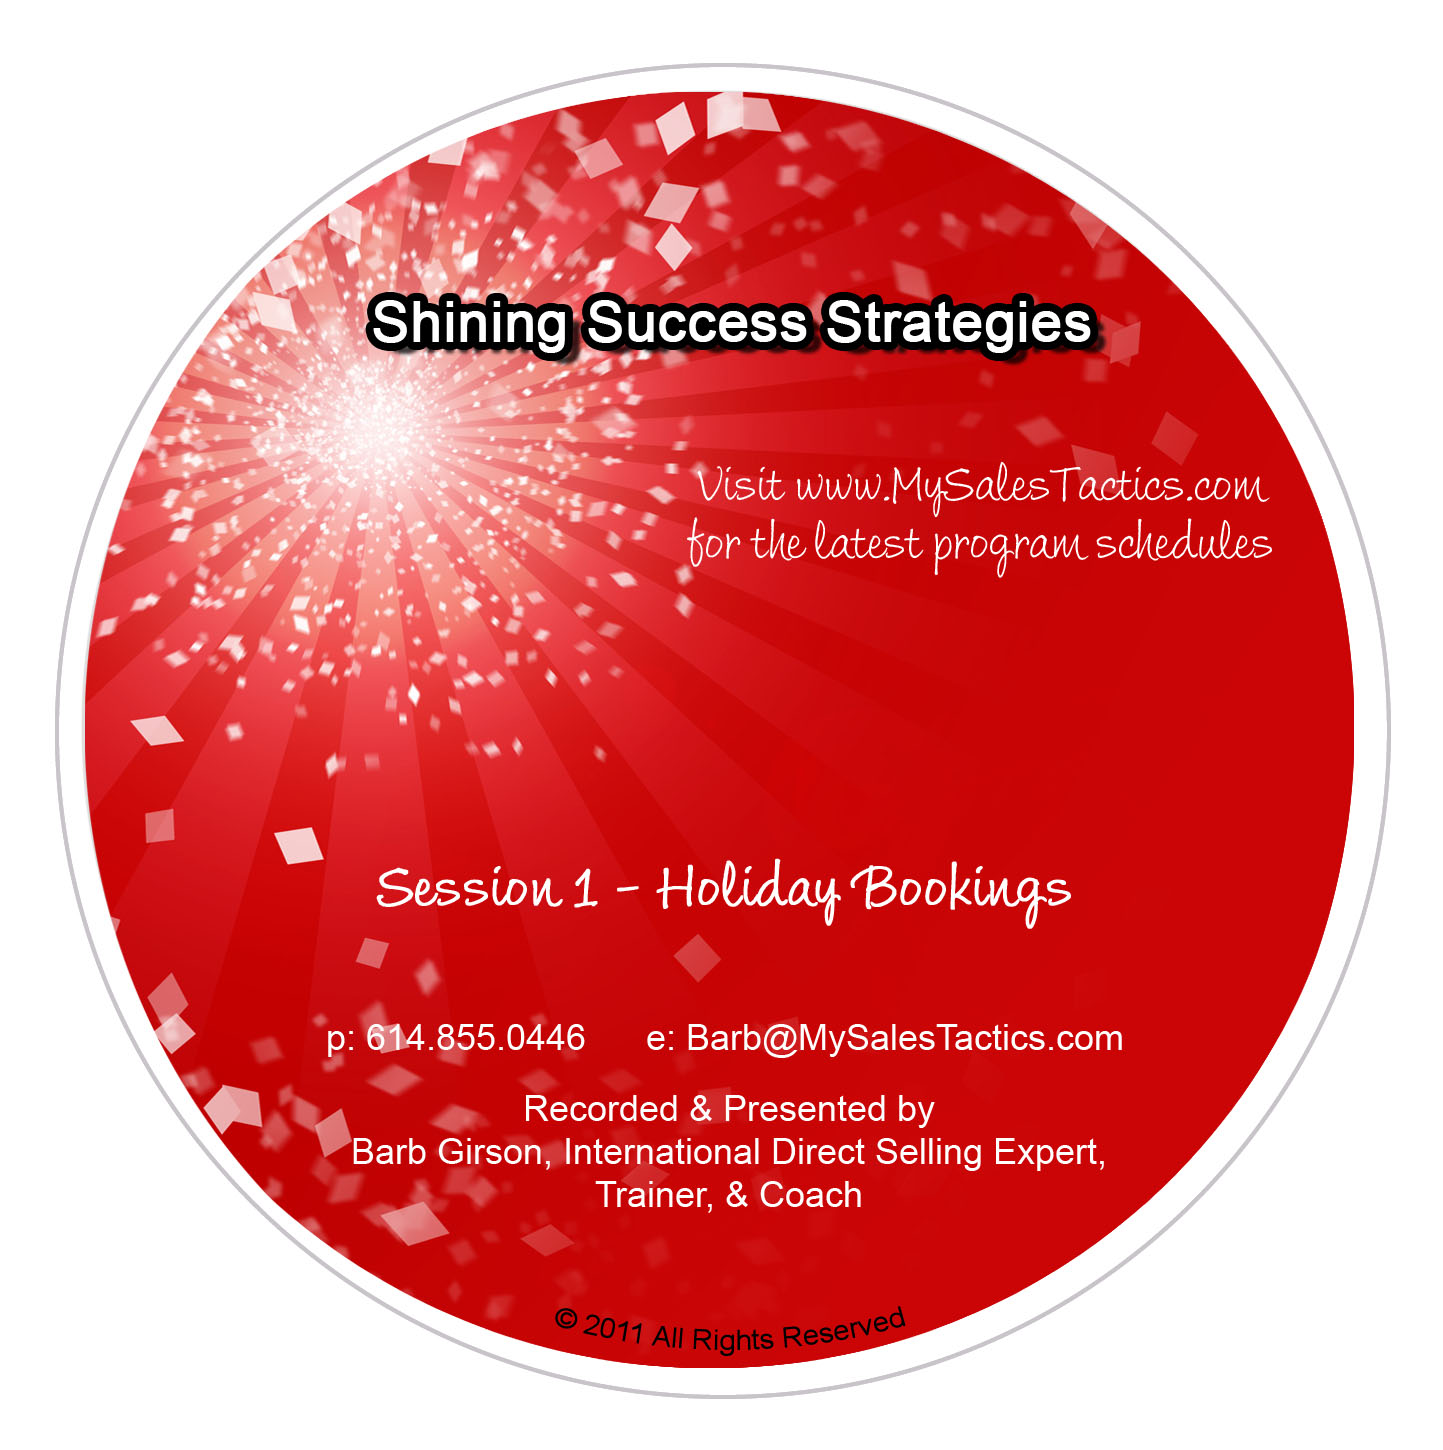 Shining Success Strategies (TM) - Session 1